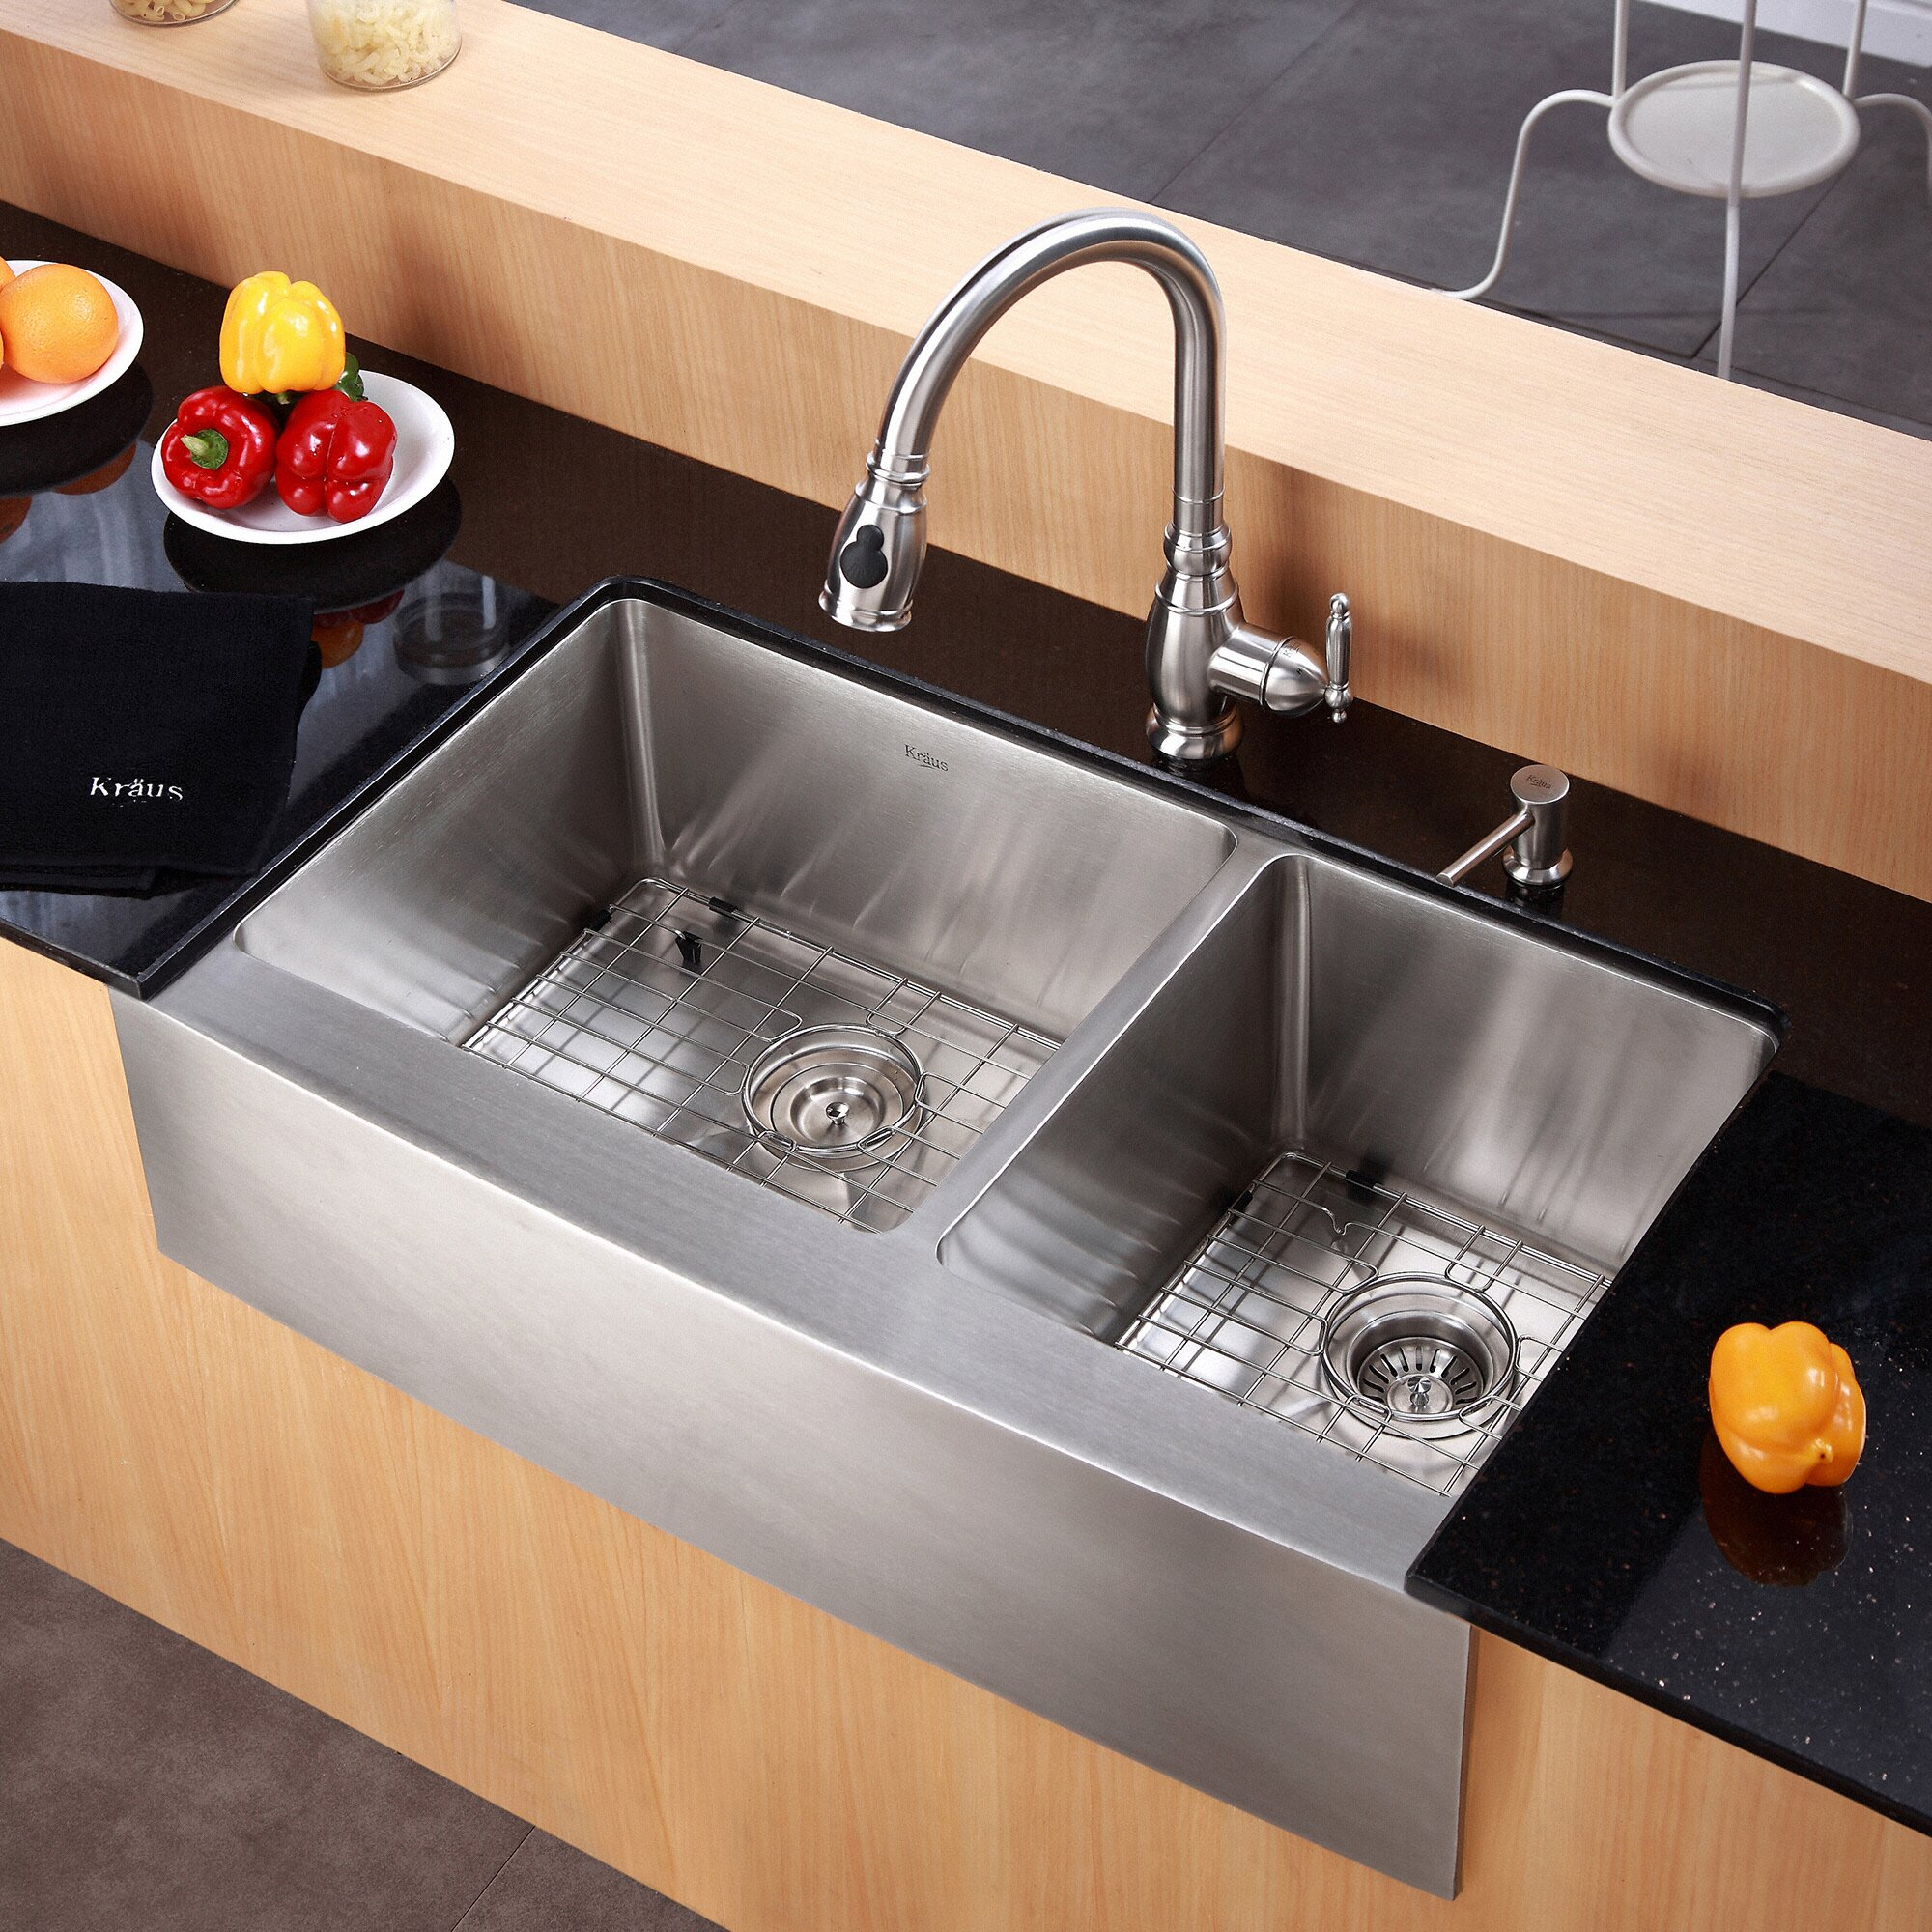 "Kraus Farmhouse 36"" 60 40 Double Bowl Kitchen Sink & Reviews"